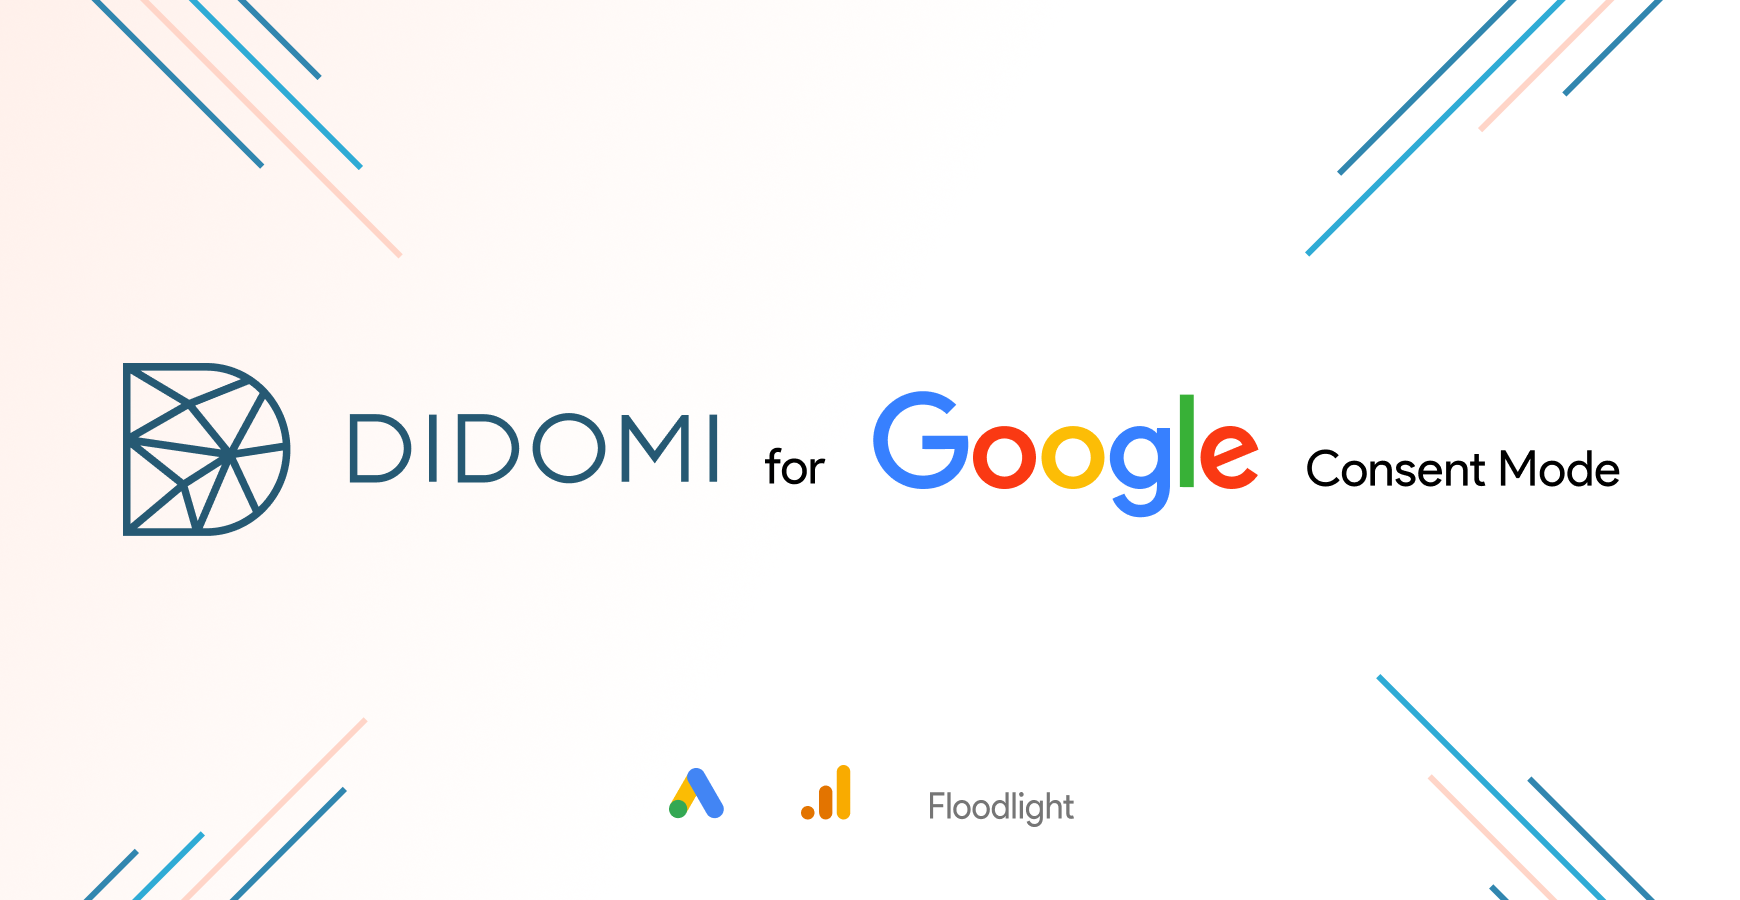 Didomi and Google Consent Mode